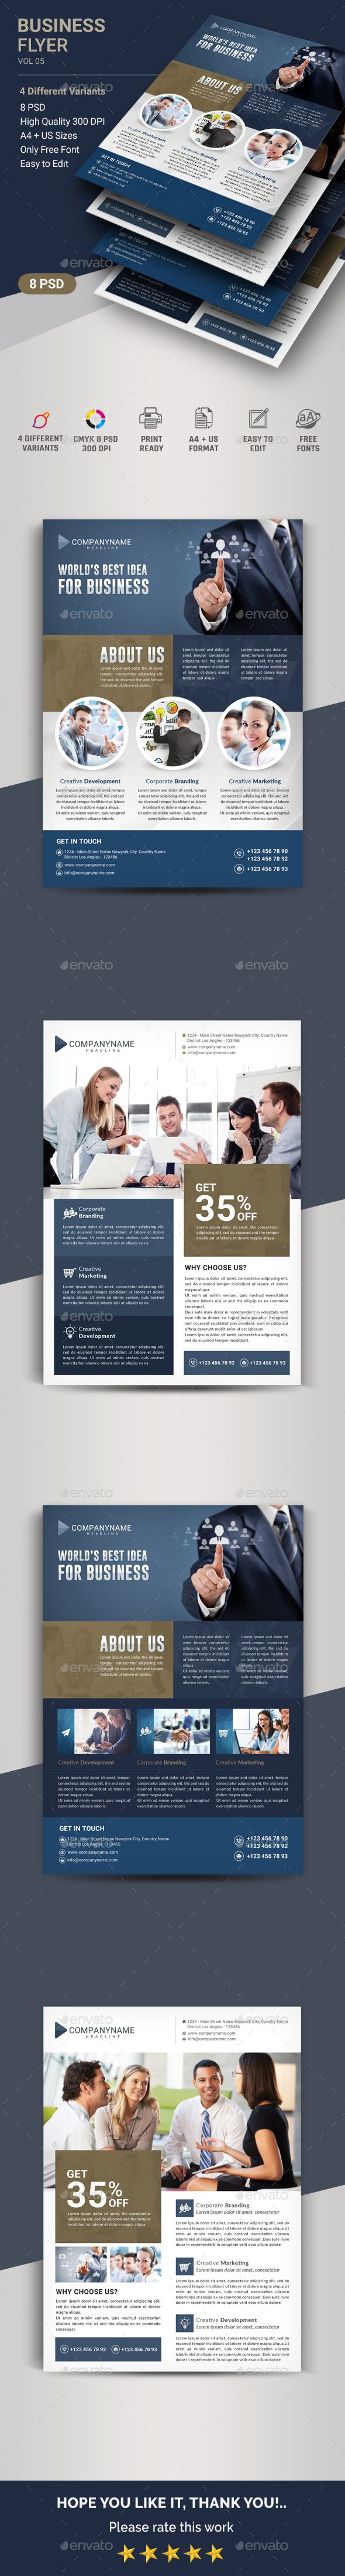 Business flyer business flyers business flyer templates and flyer business flyer business flyer template psd wajeb Image collections